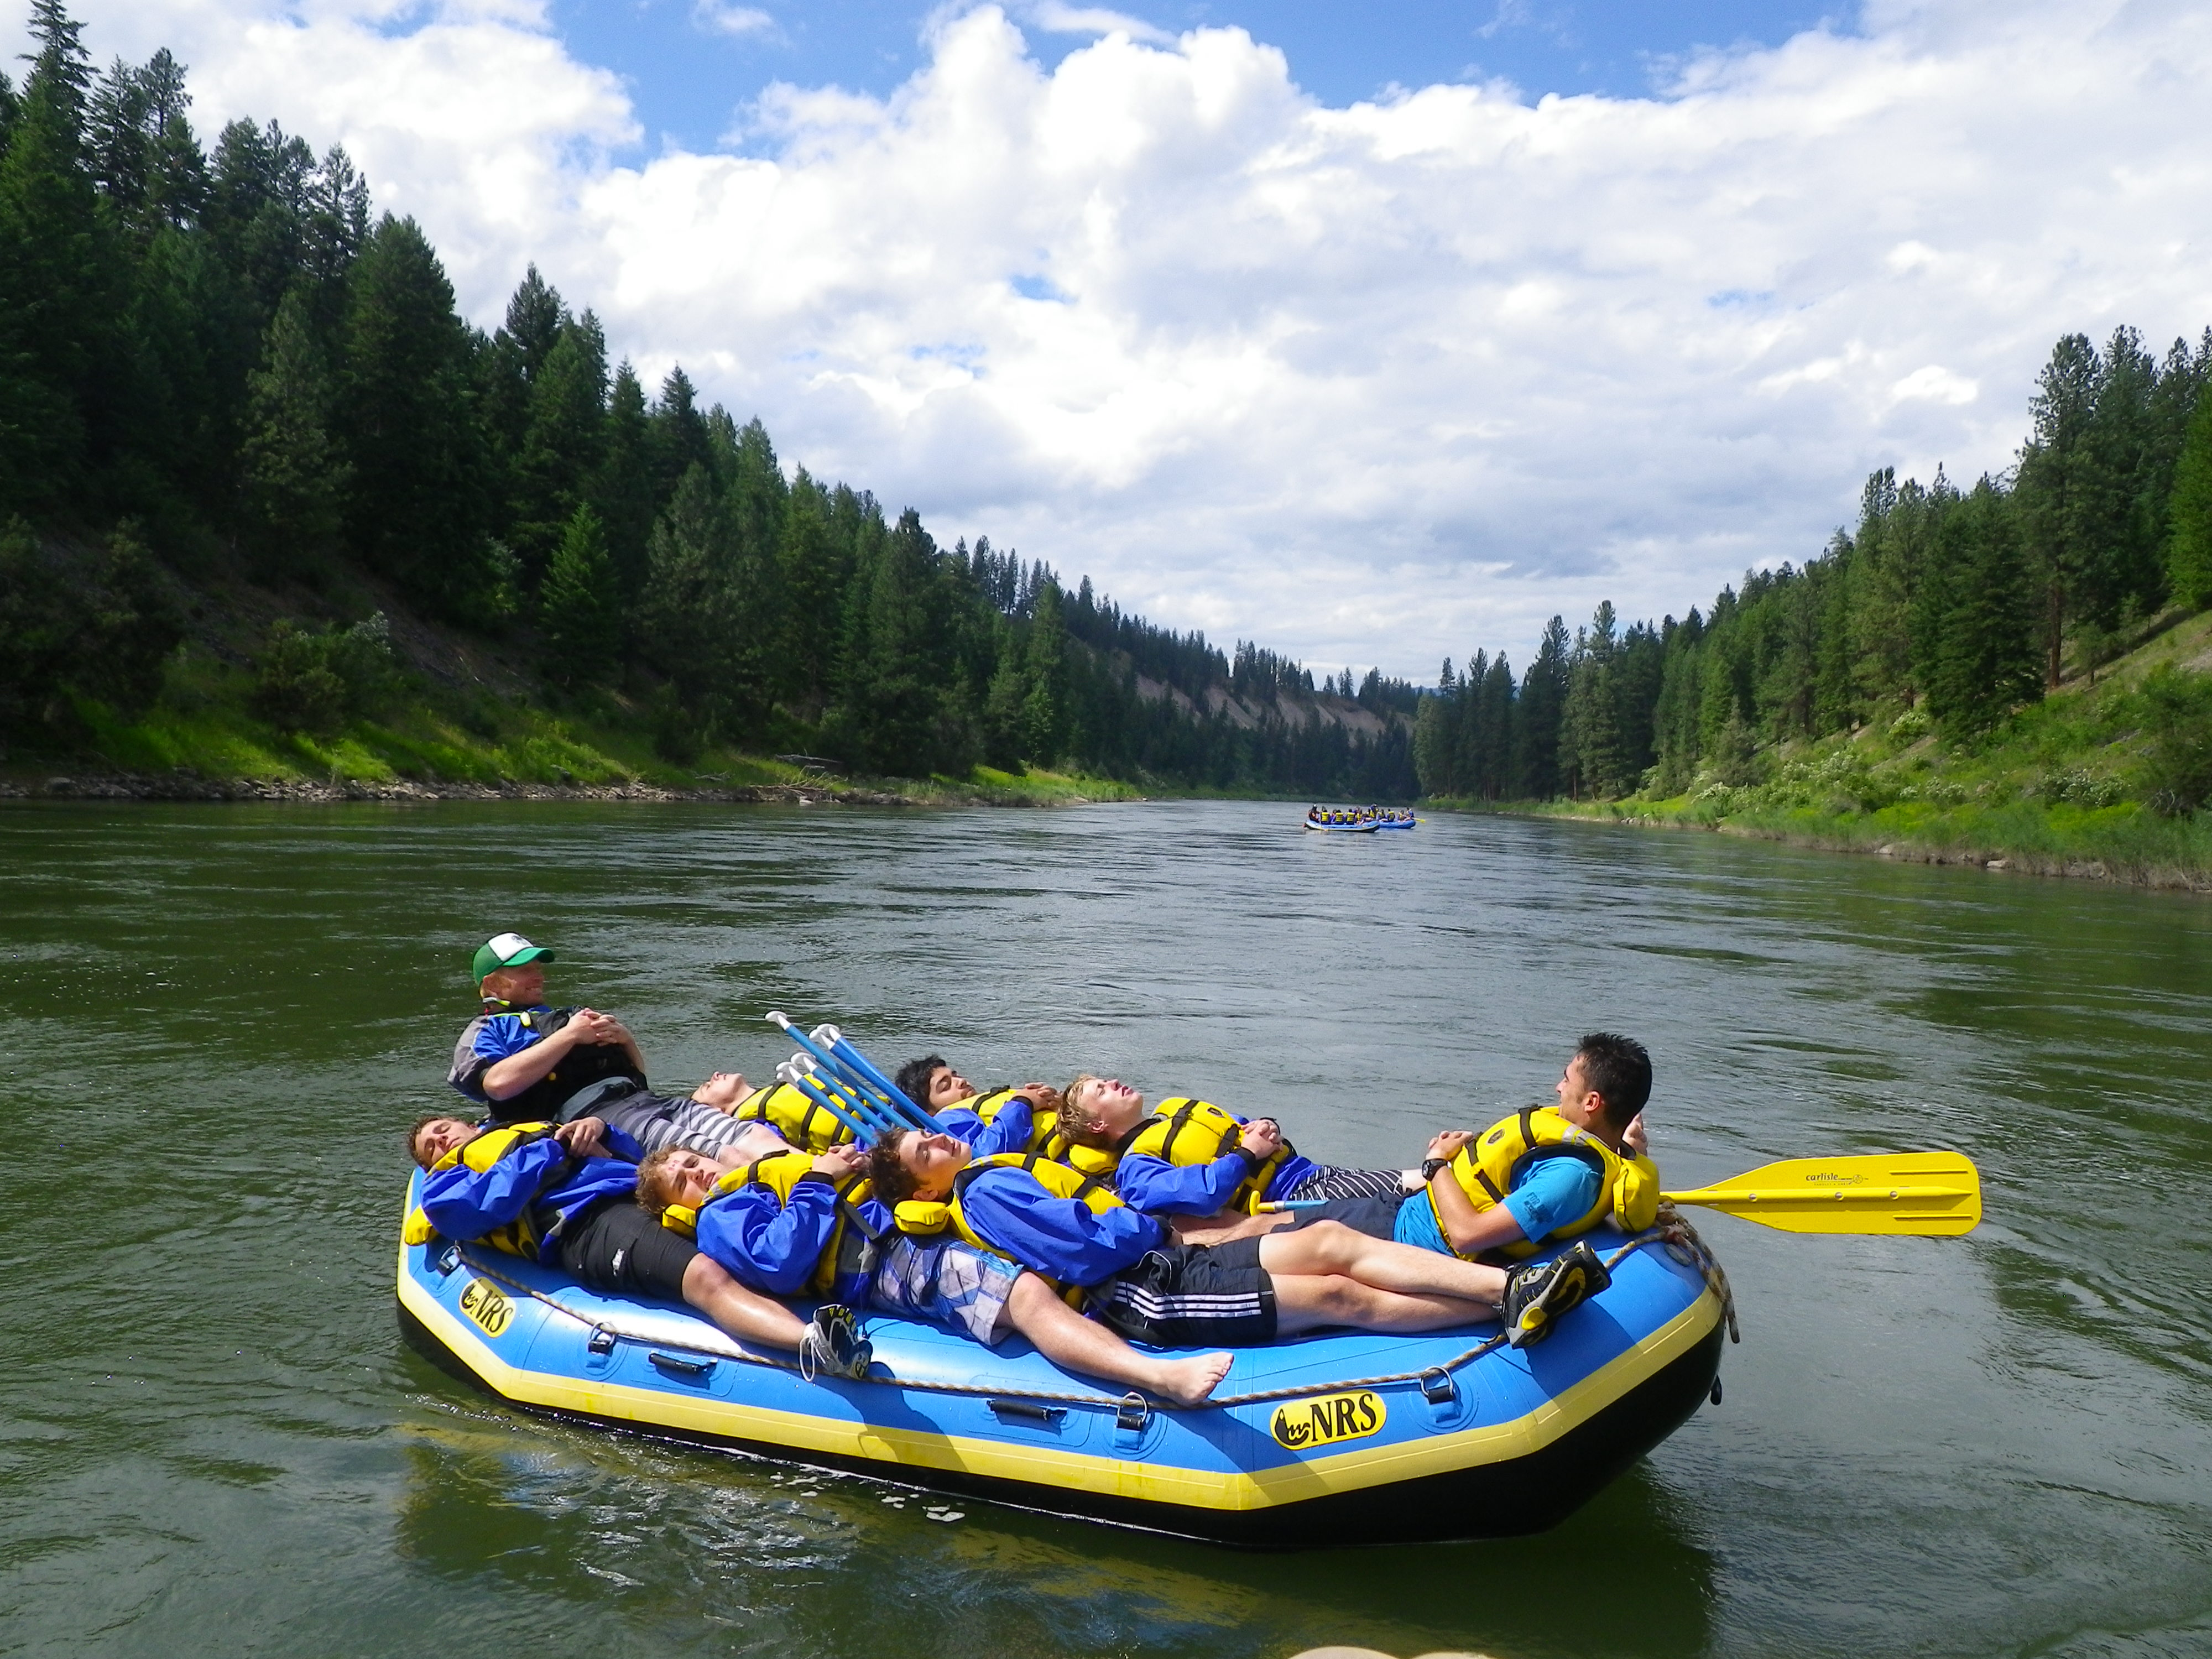 Rafting down the Clark Fork